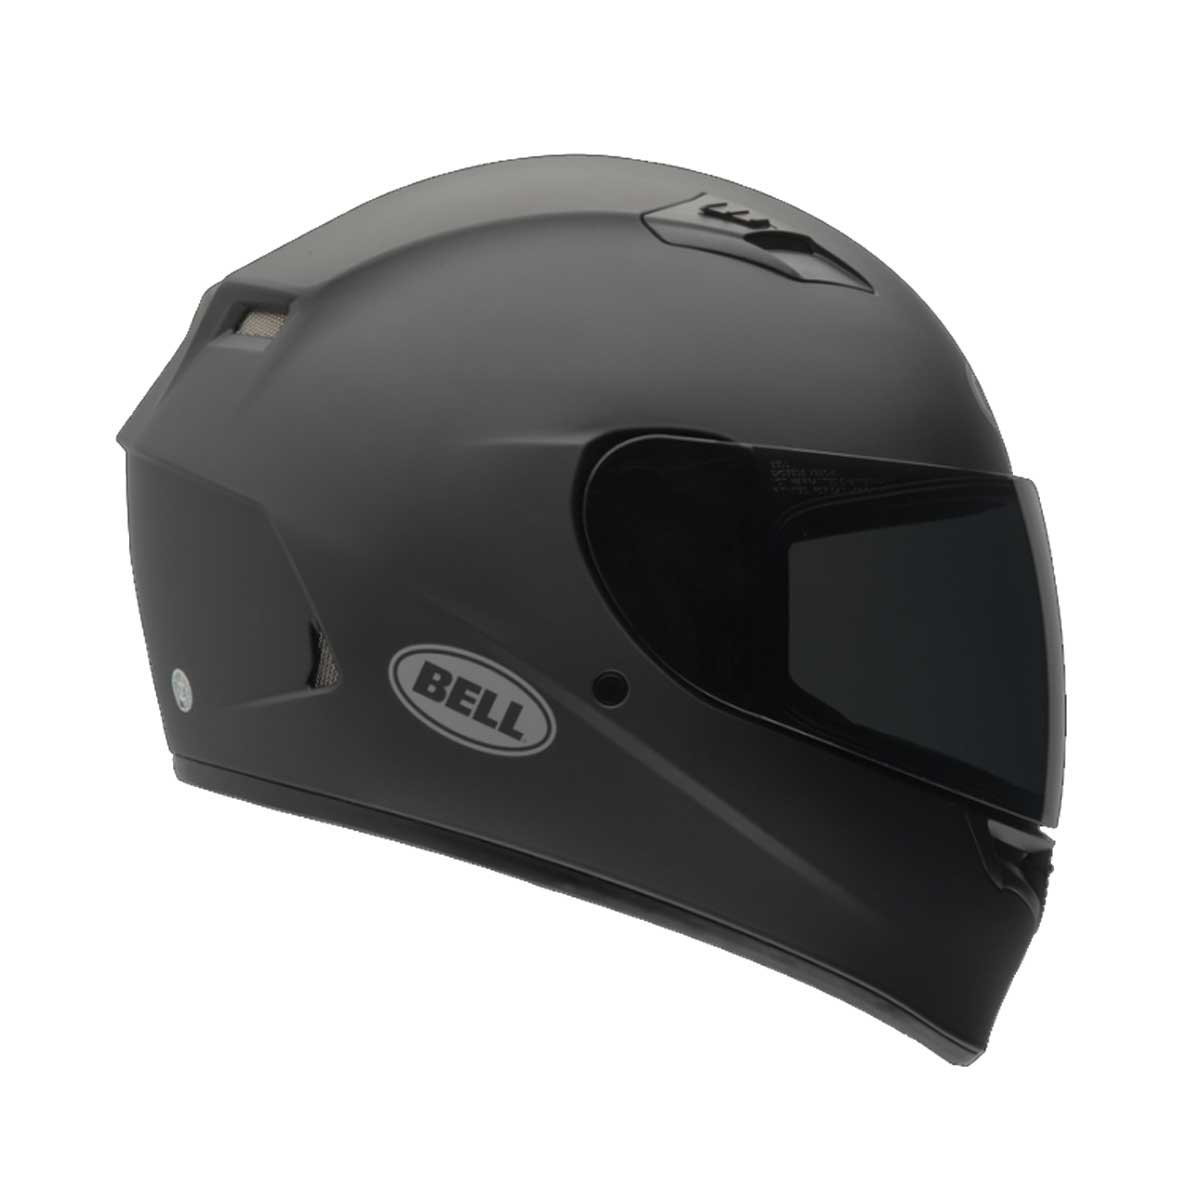 Bell Solid Adult Qualifier Street Bike Racing Motorcycle Helmet